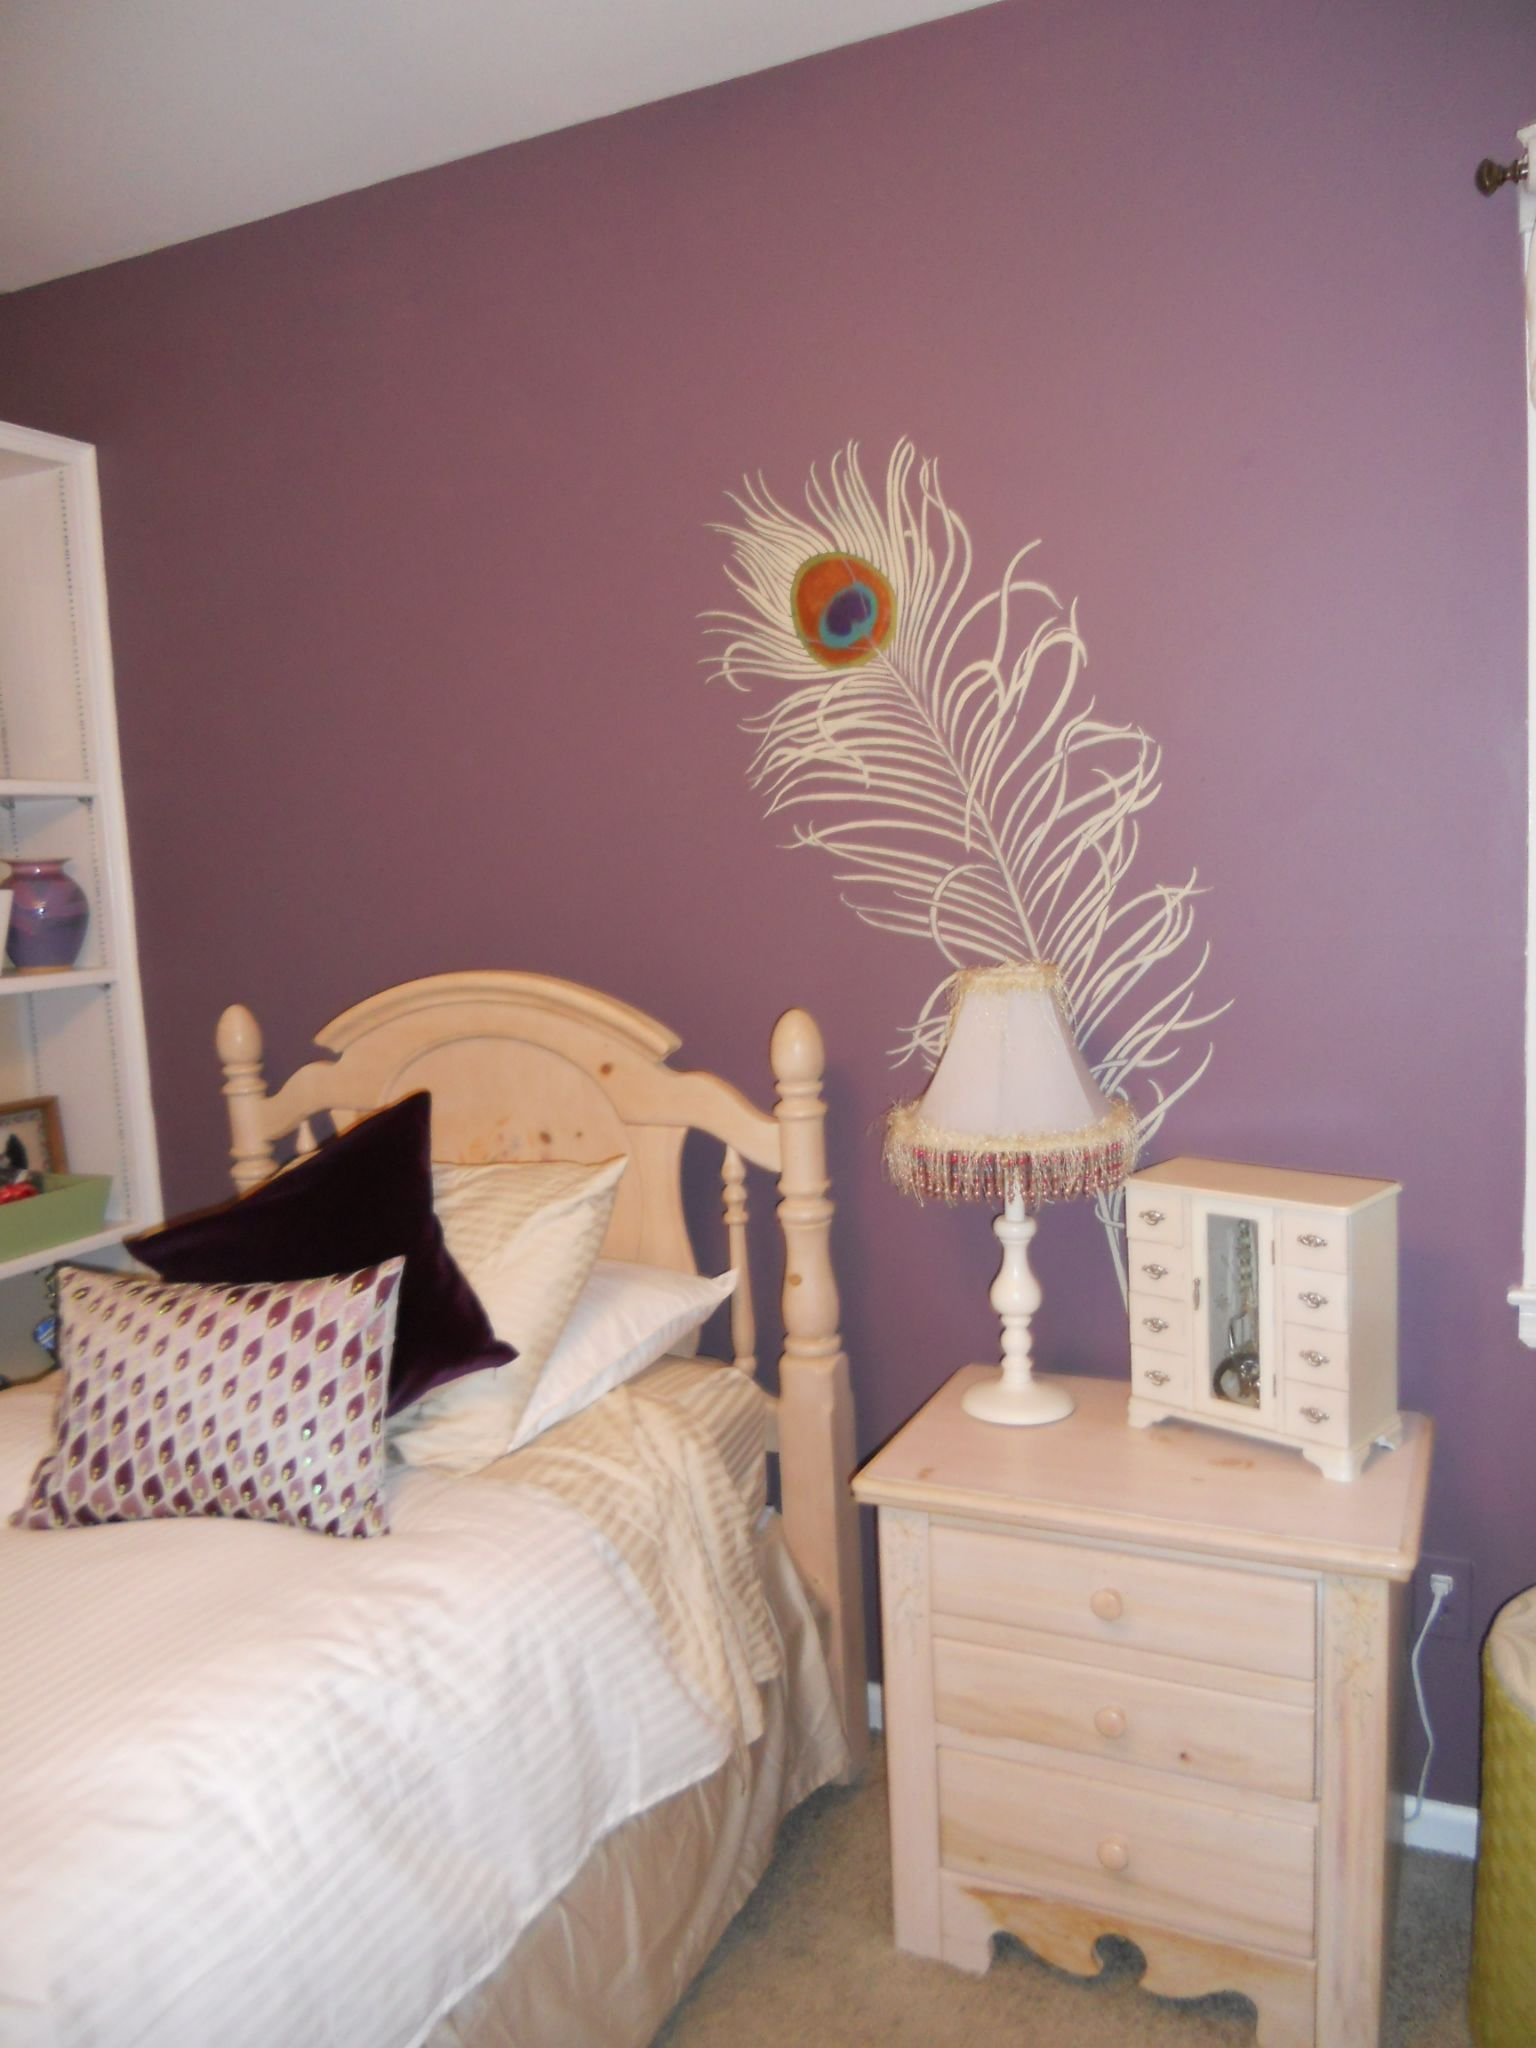 Peacock Bedroom Decorating Ideas Peacock Feather On Mauve Wall Peacock Moods Pinterest